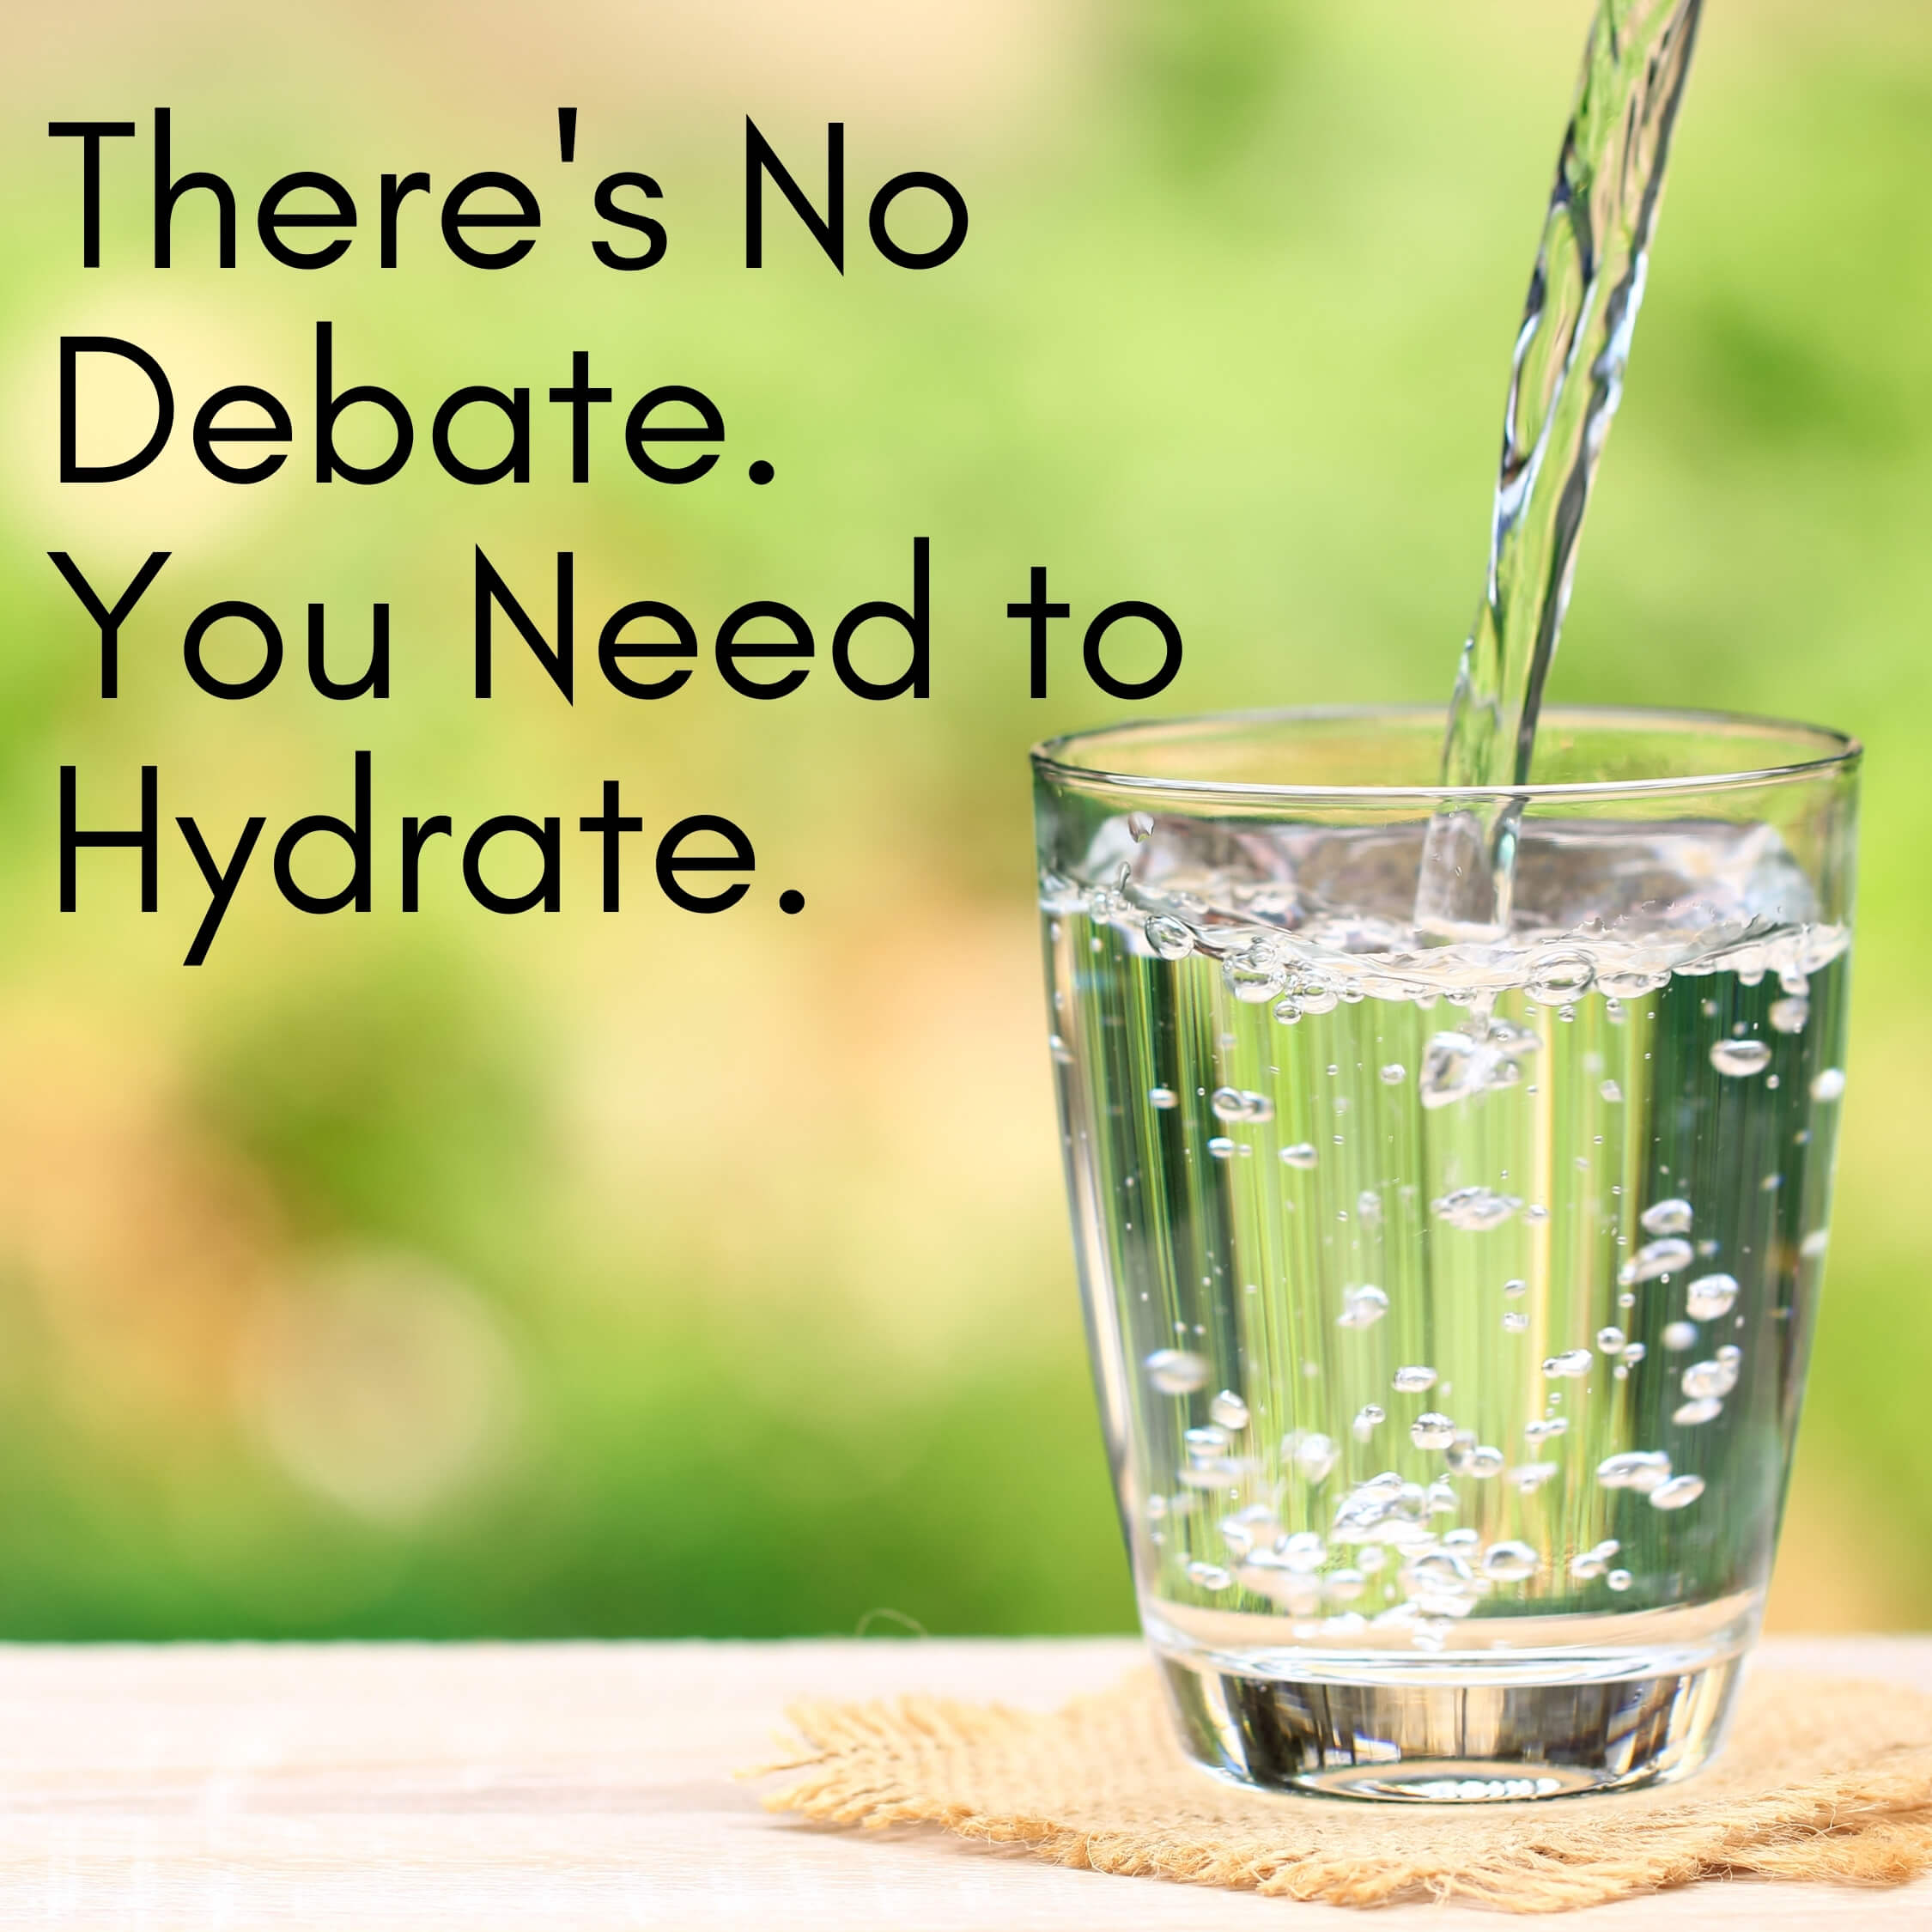 Glass of water to hydrate with